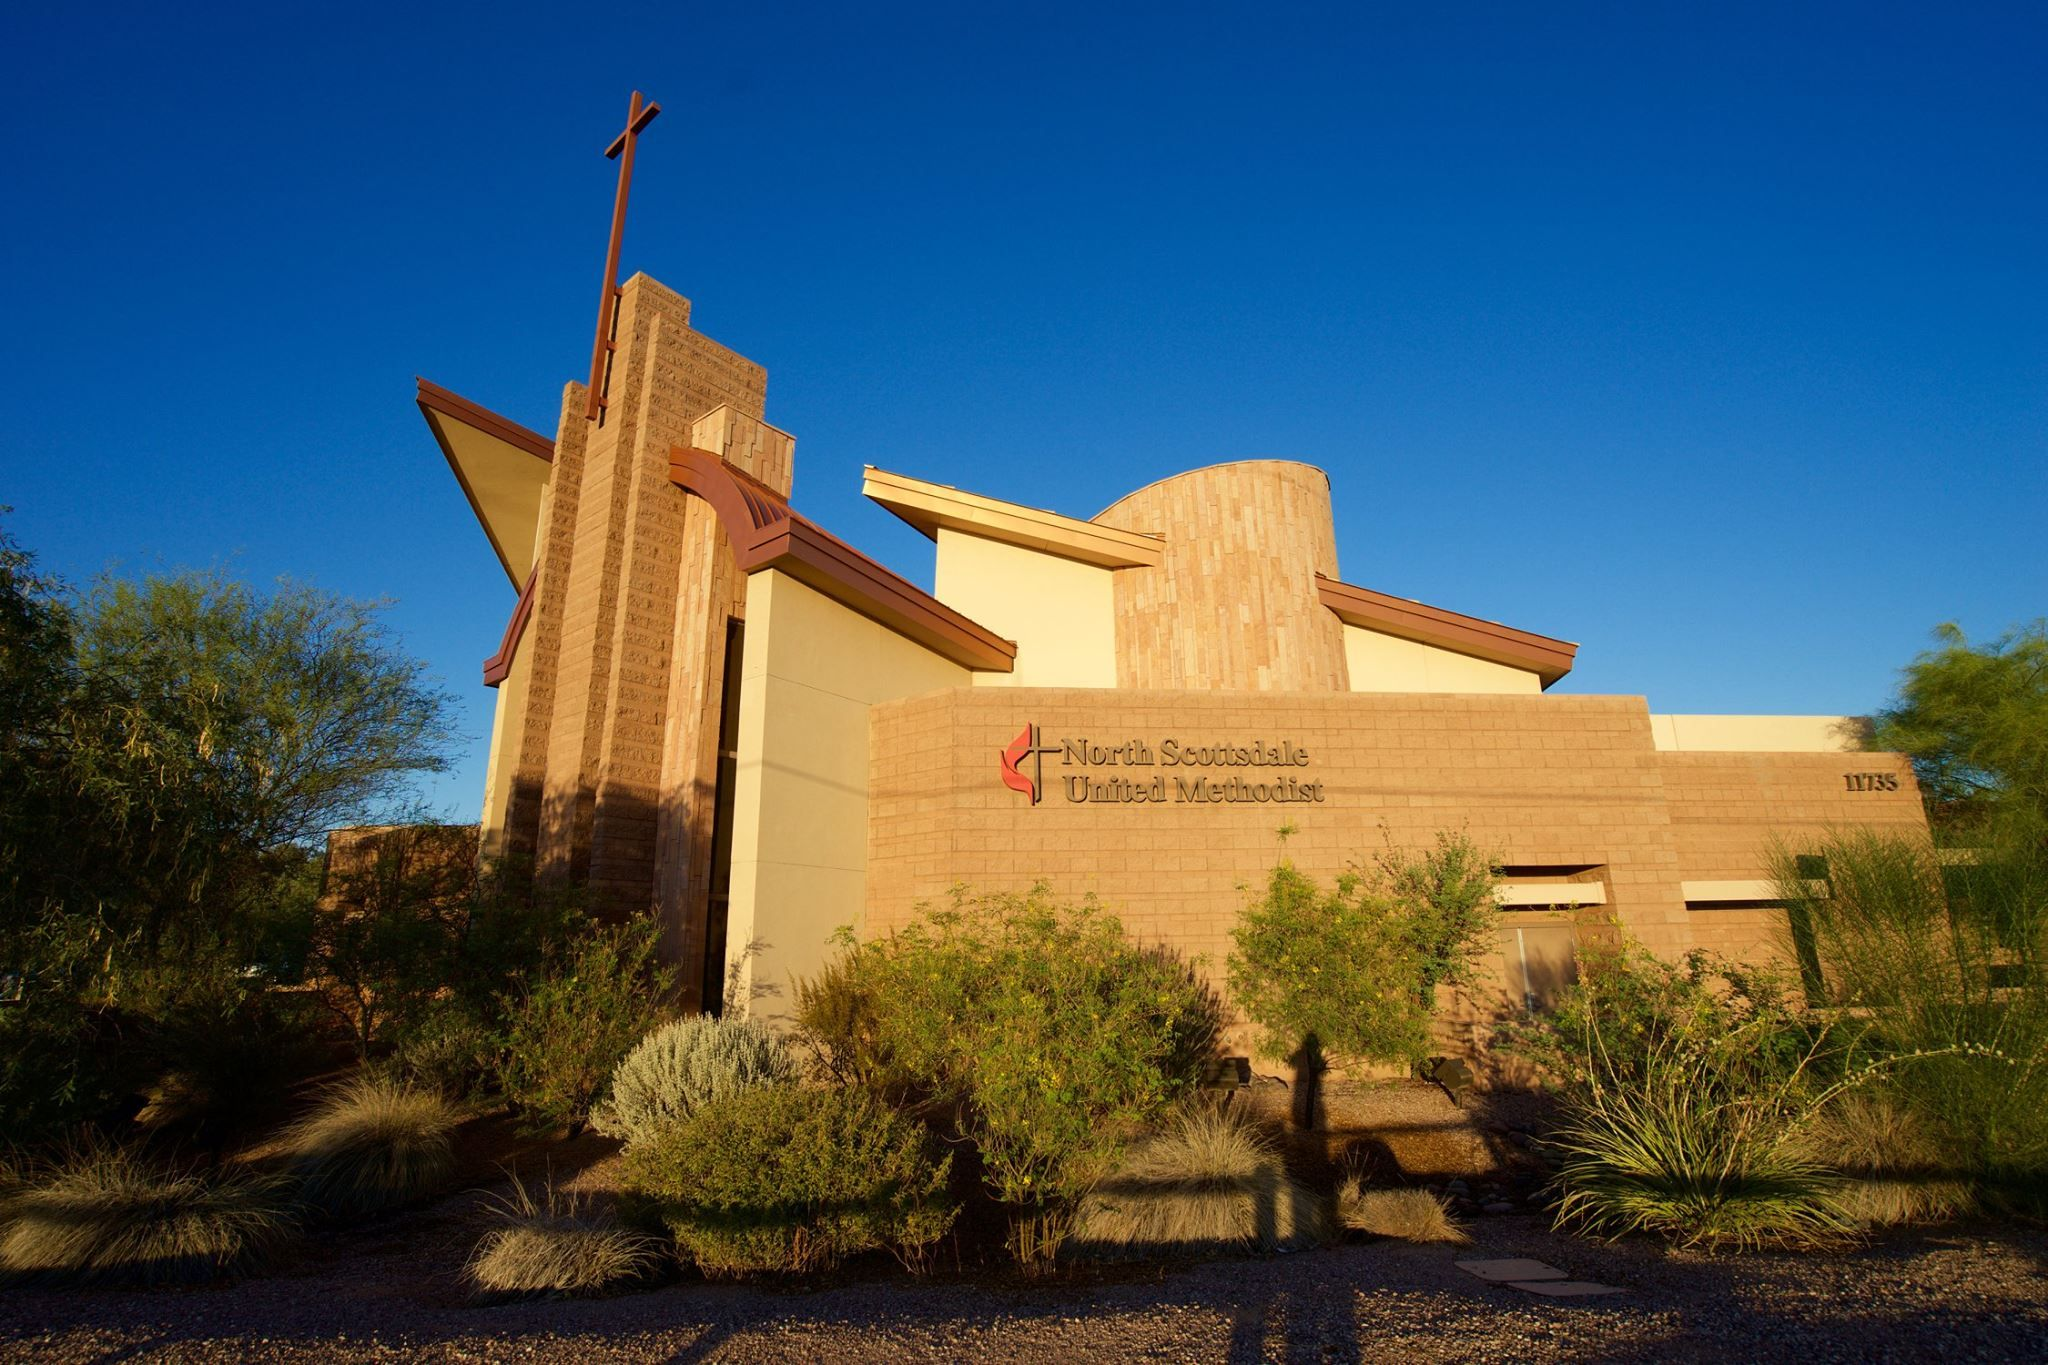 "WJ Memorial Service held at North Scottsdale United Methodist Church.One tradition of the Western Jurisdictional Conference is a time of informal ""meet-and-greet"" with episcopal candidates.  Evening programs were at the North Scottsdale United Methodist Church. The church hosted a dinner buffet, giving attendees time to visit over dinner, then episcopal candidates made themselves available for conversations with small groups before the memorial service.  Over 200 people gathered."